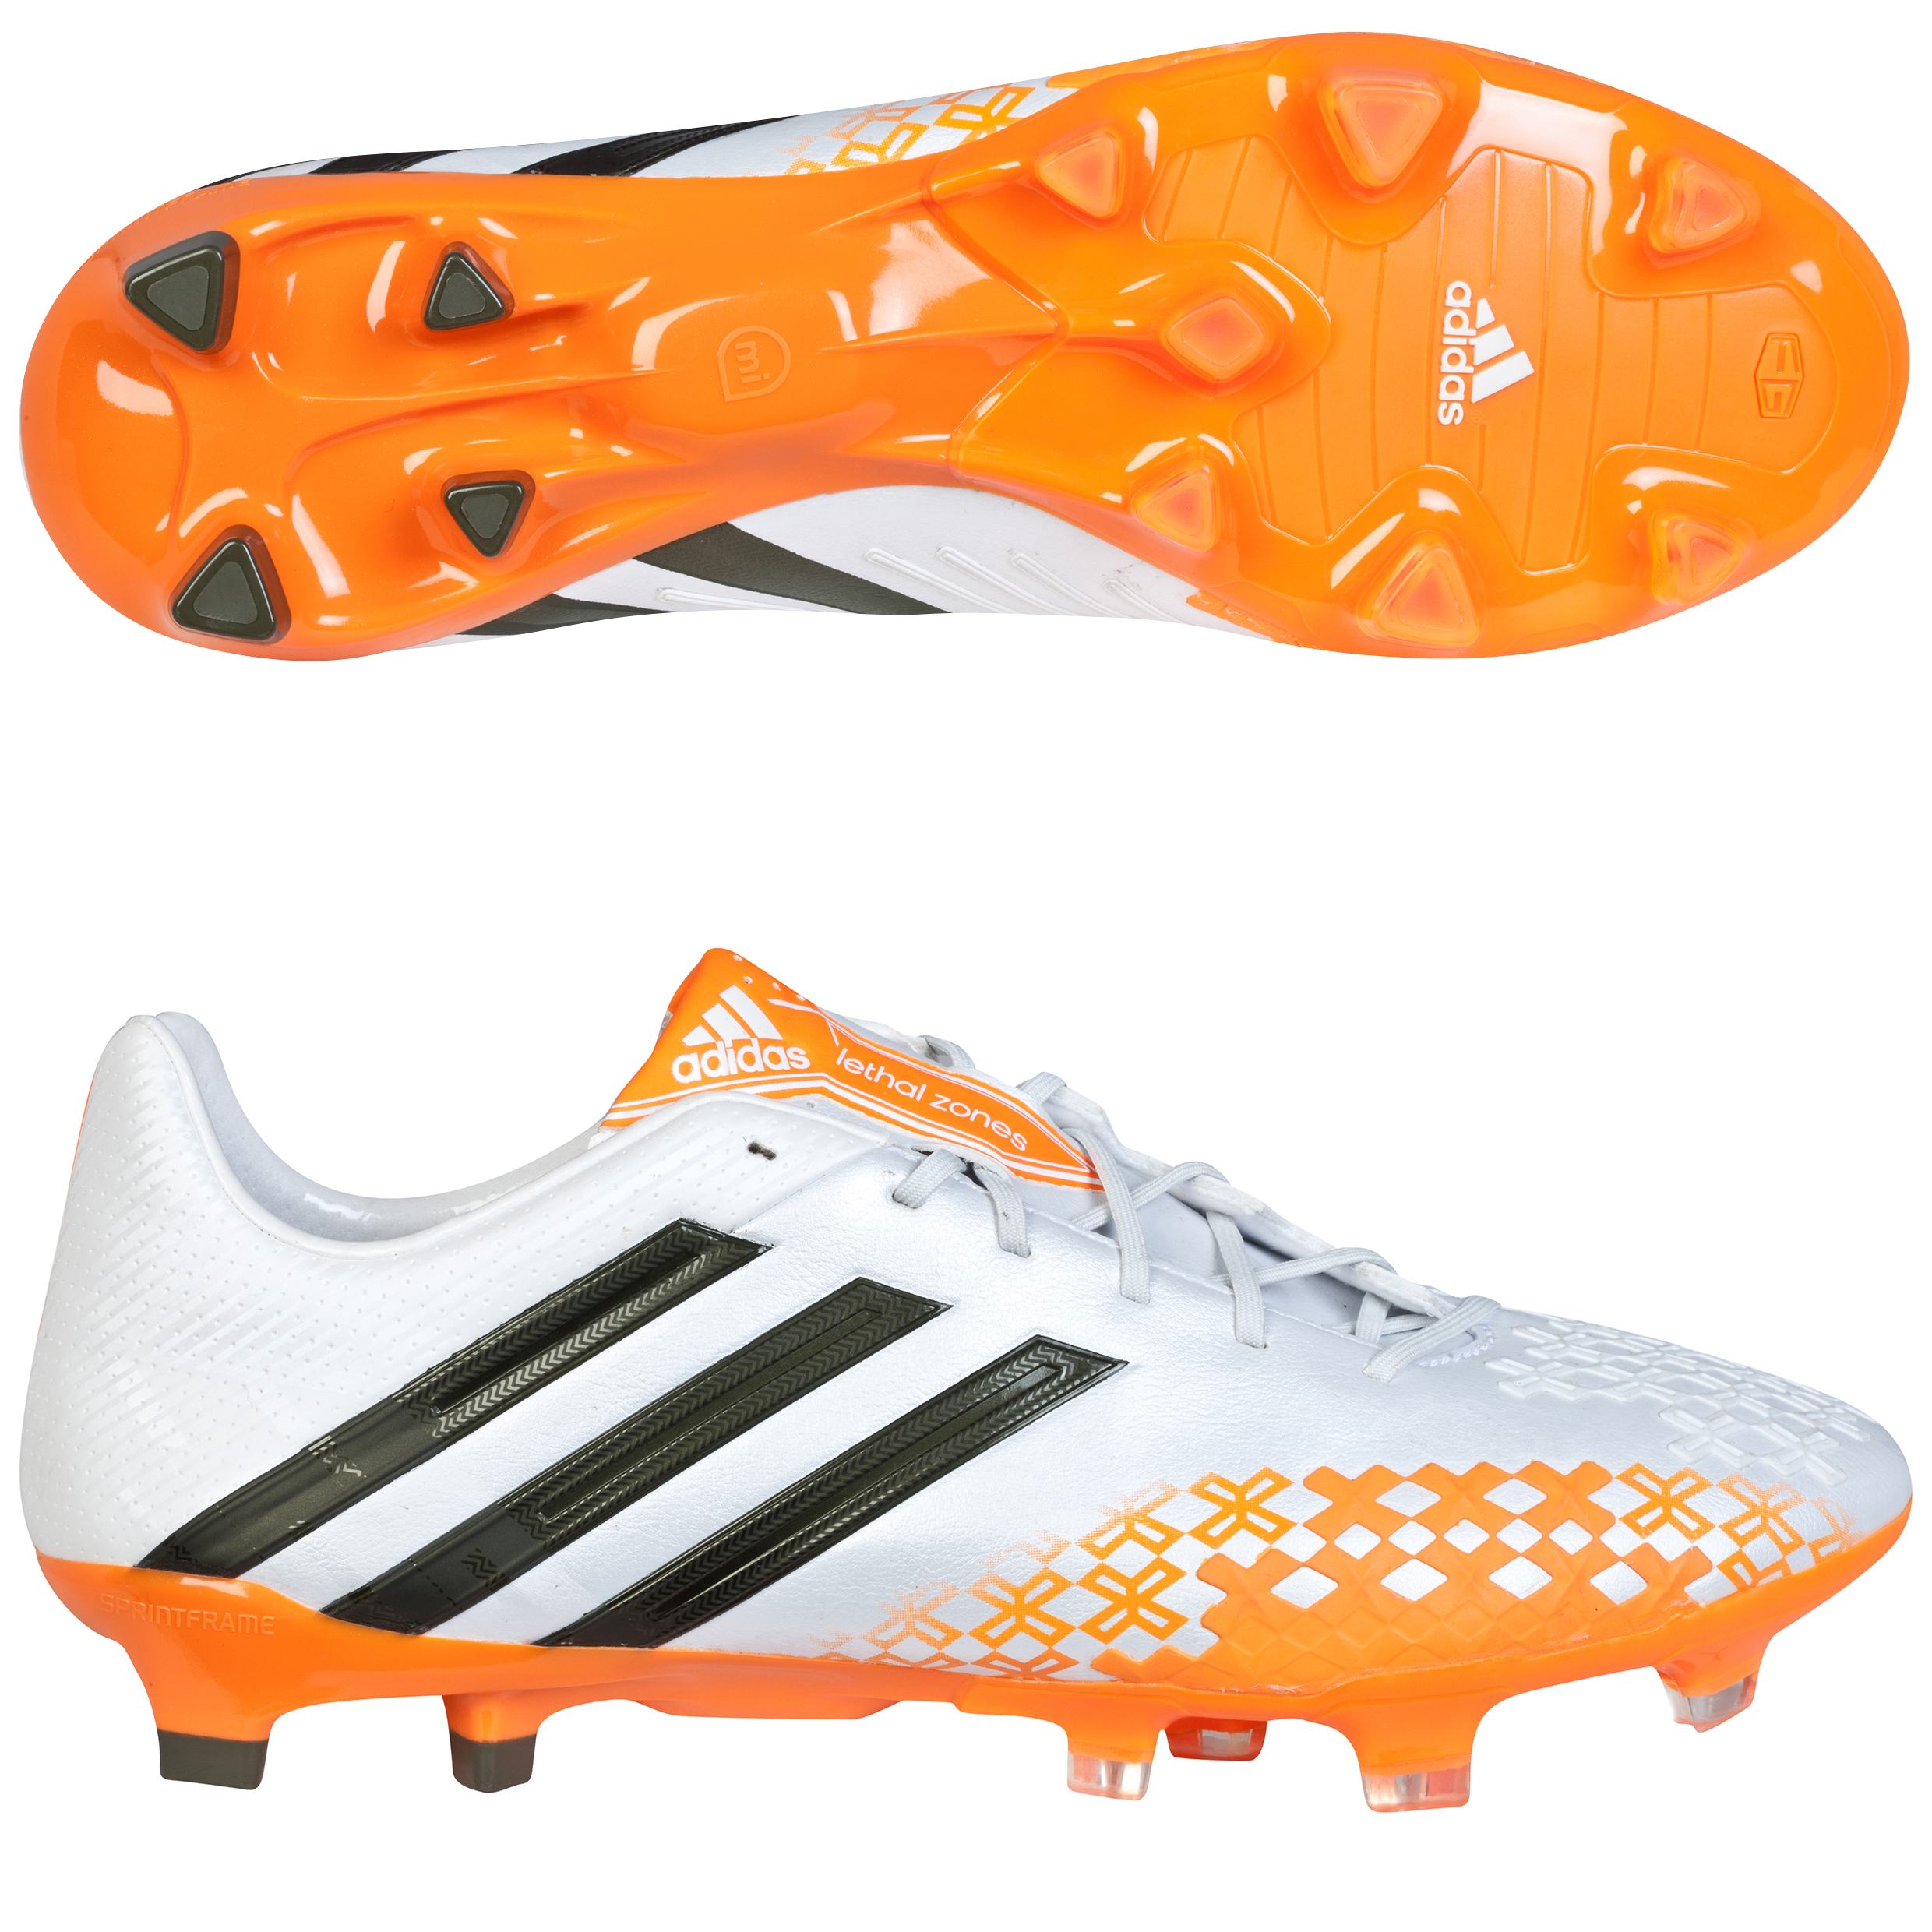 adidas Predator LZ TRX Firm Ground Football Boots White